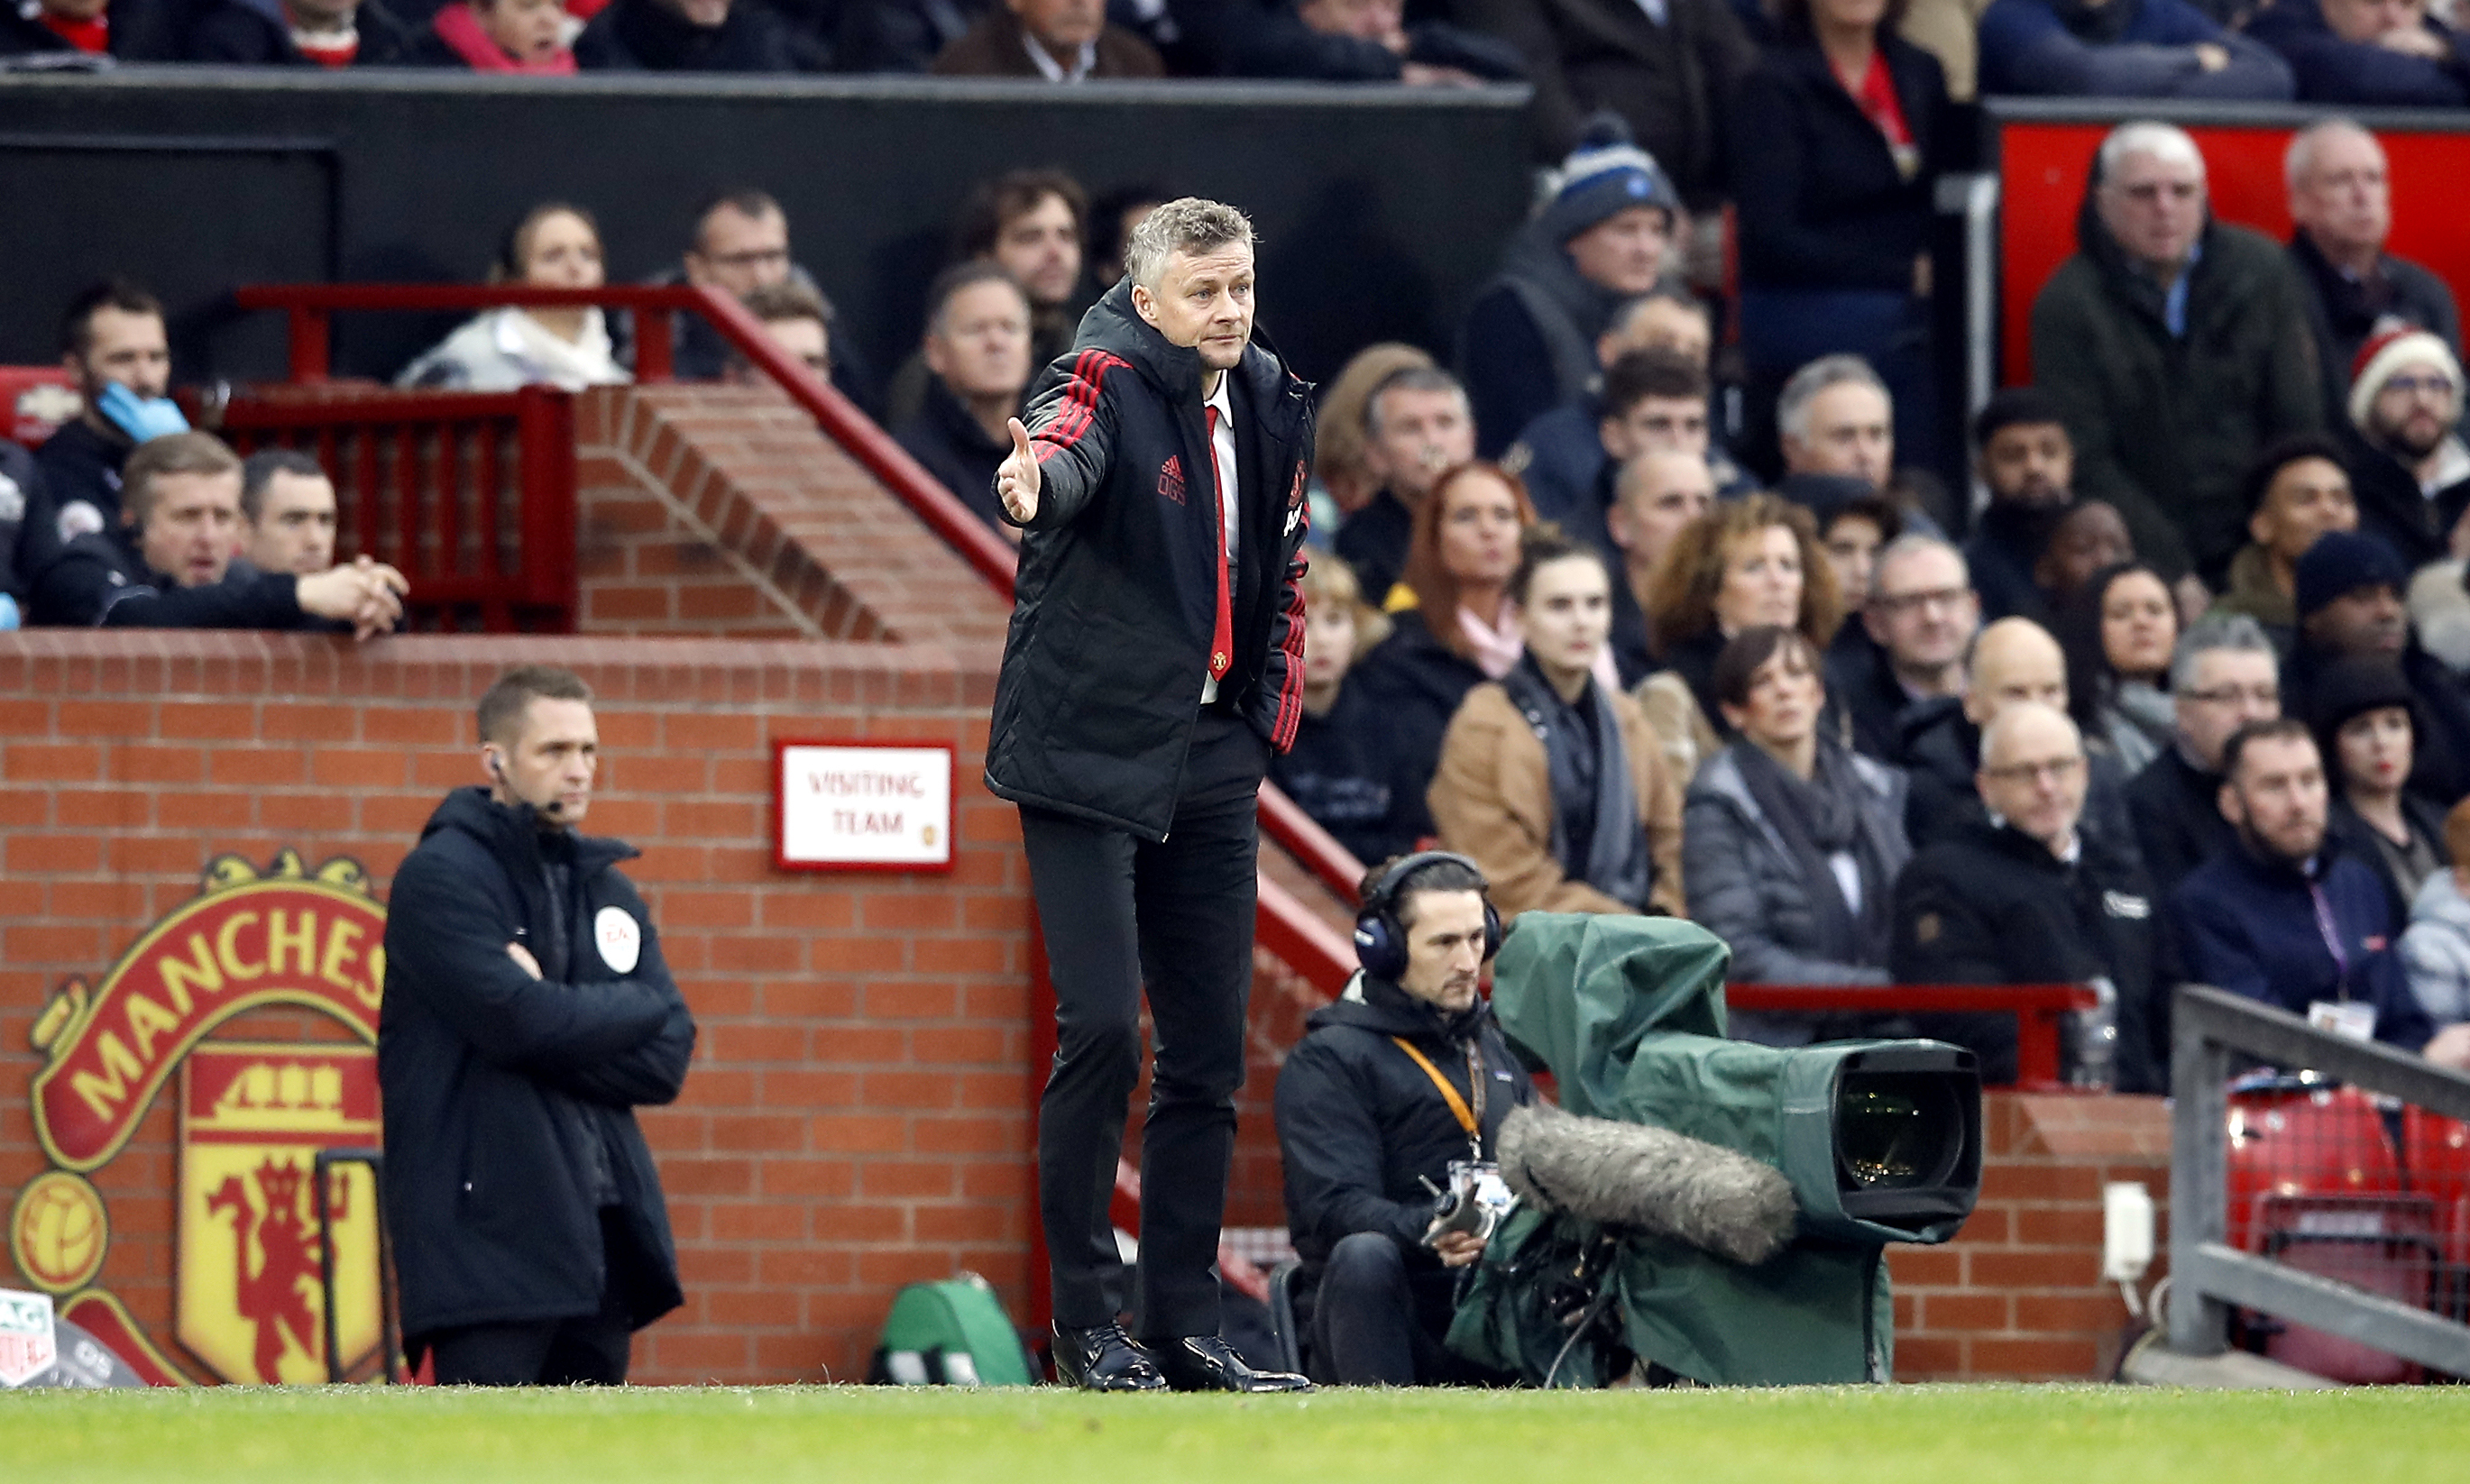 Ole Gunnar Solskjaer looking forward to 'special' Old Trafford return